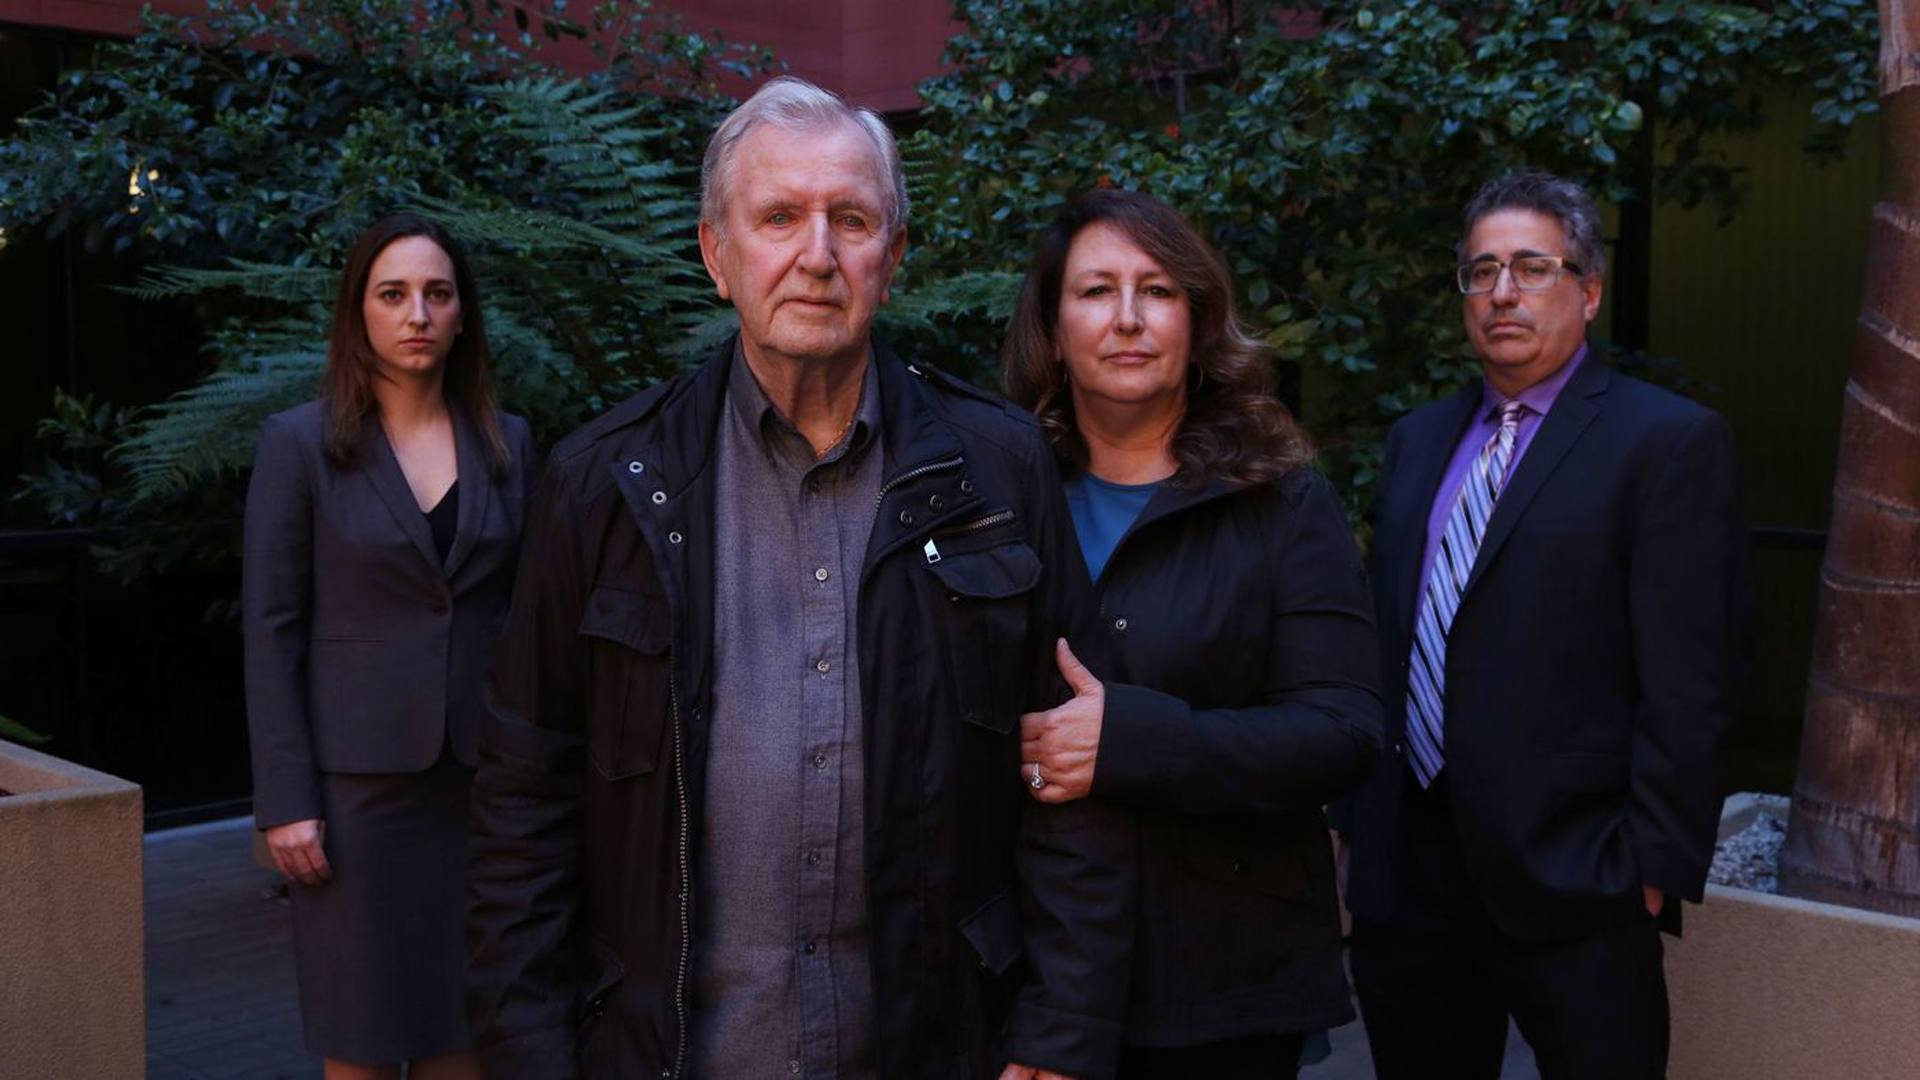 """Francis Kerrigan and Carole Meikle, center, and their lawyers Ryann E. Hall, left, and V. James DeSimone, contend the Orange County coroner switched one dead homeless man's body for another to cover up a botched death notification last May. """"It's a horror show on top of a horror show,"""" Kerrigan said. (Credit: Katie Falkenberg / Los Angeles Times)"""